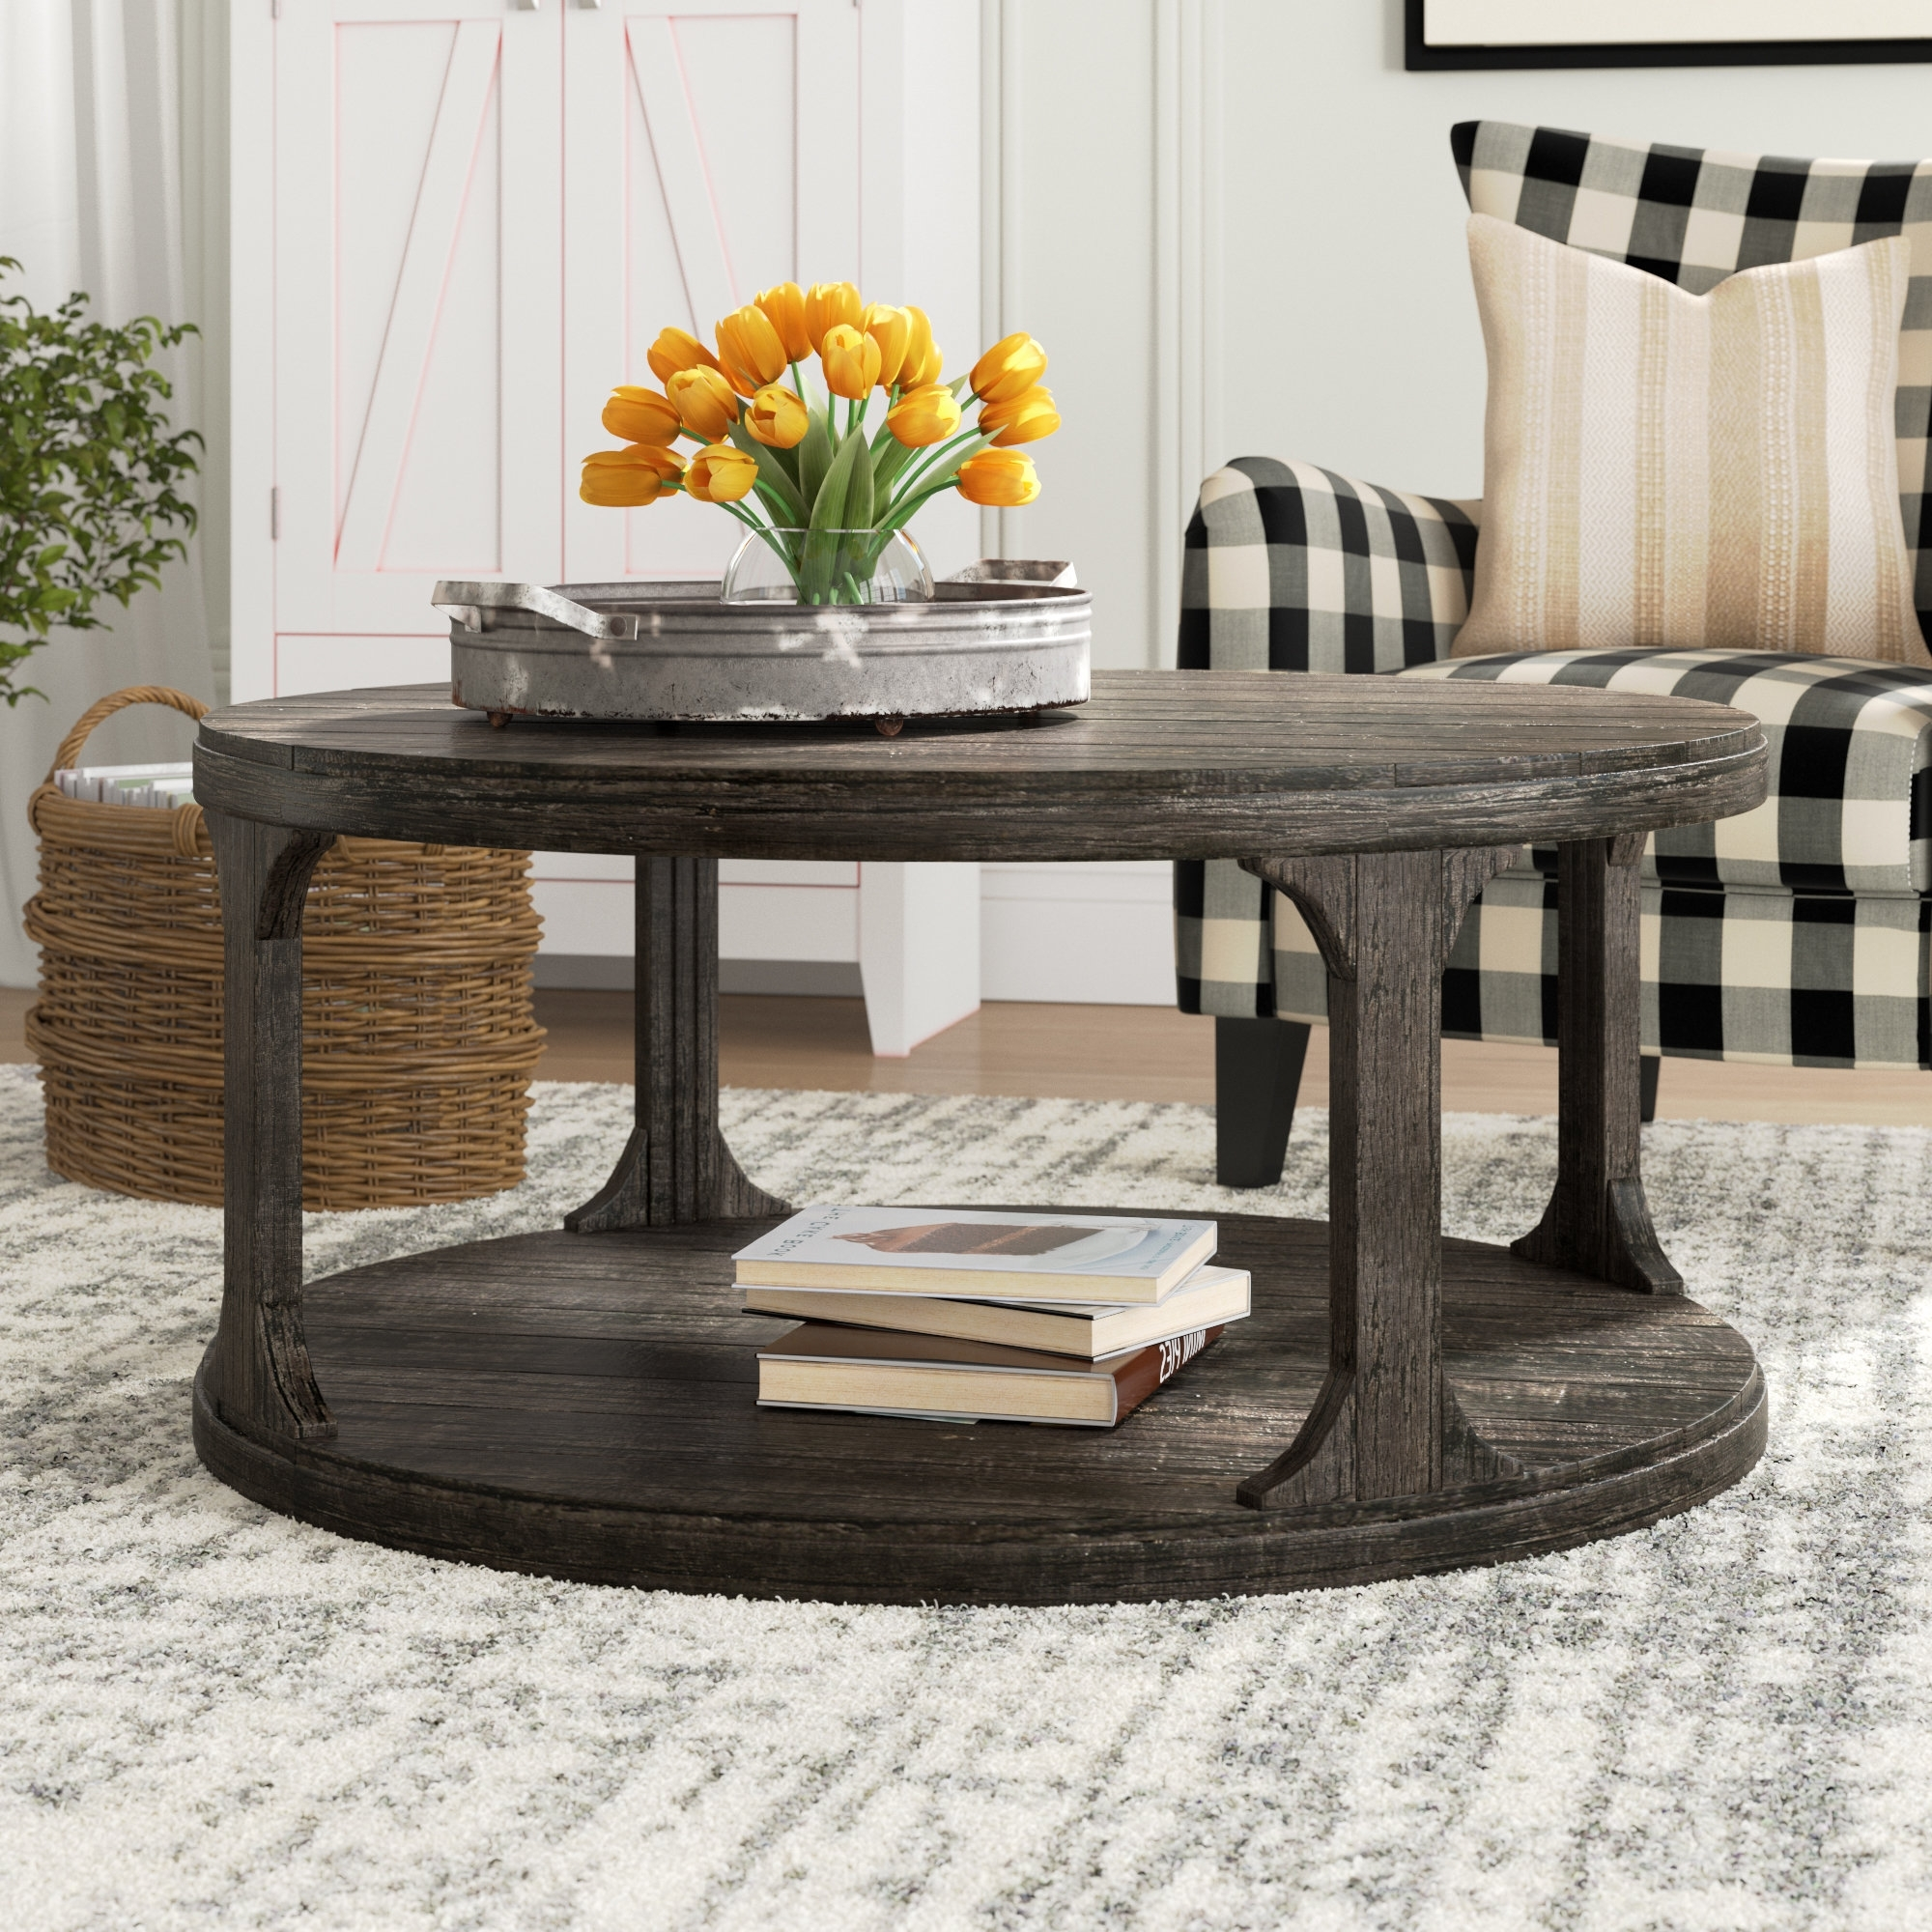 Laurel Foundry Modern Farmhouse Kaitlin Coffee Table (View 12 of 20)